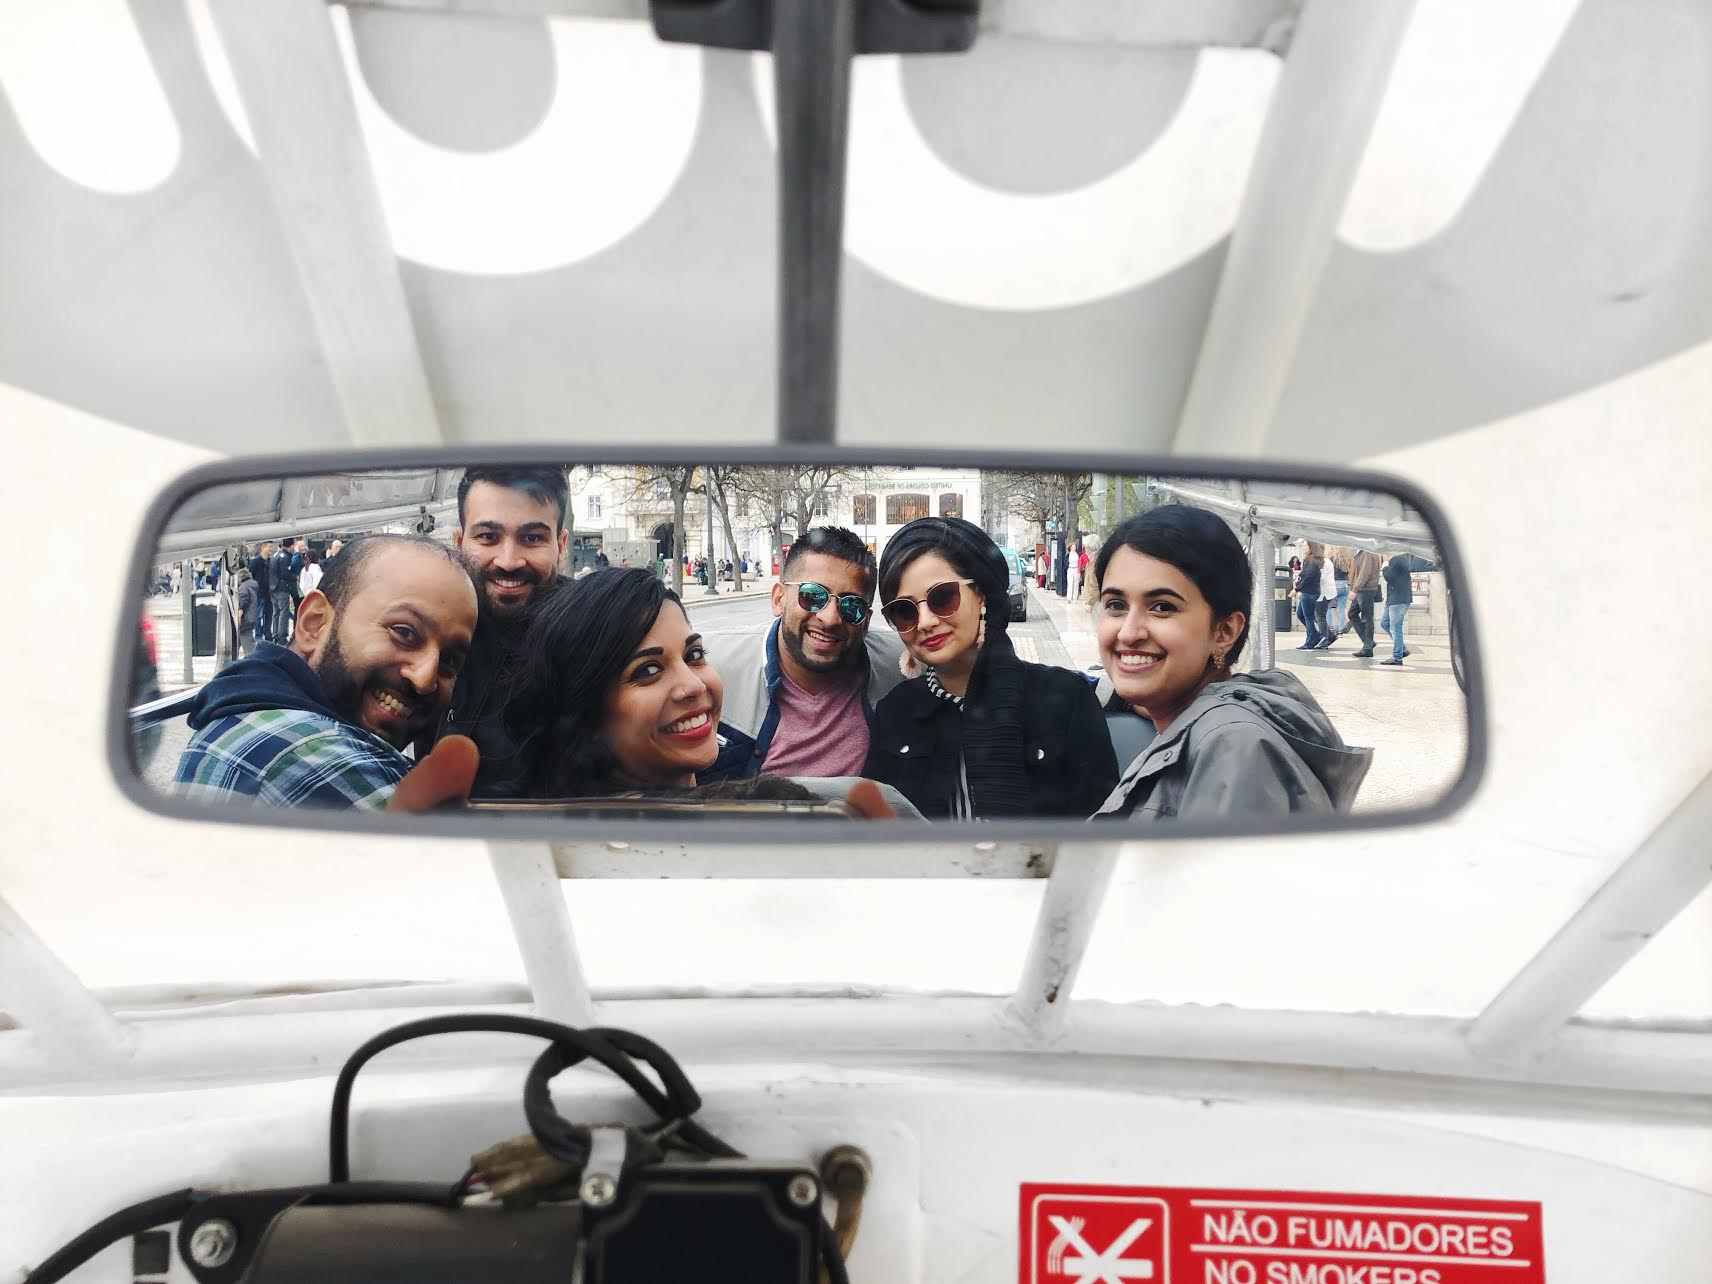 Muslim-halal-travel-guide-Lisbon-transportation-tuk-tuk